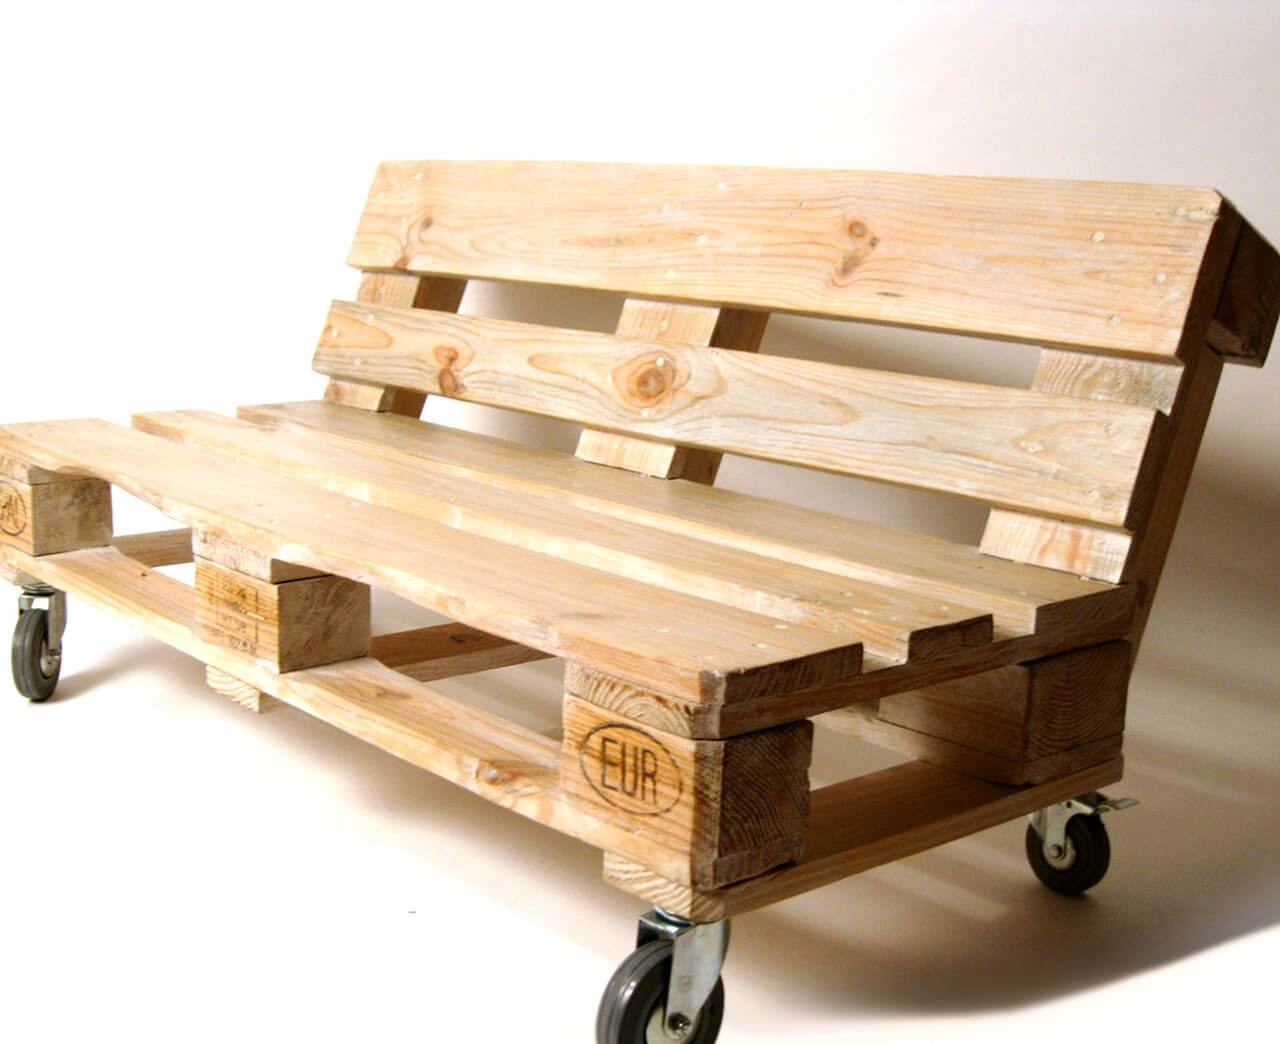 35%2BGenius%2BDIY%2BWood%2BPallet%2BFurniture%2BDesigns%2B%25282%2529 35 Genius DIY Easy Wood Pallet Furniture Designs Ideas Interior